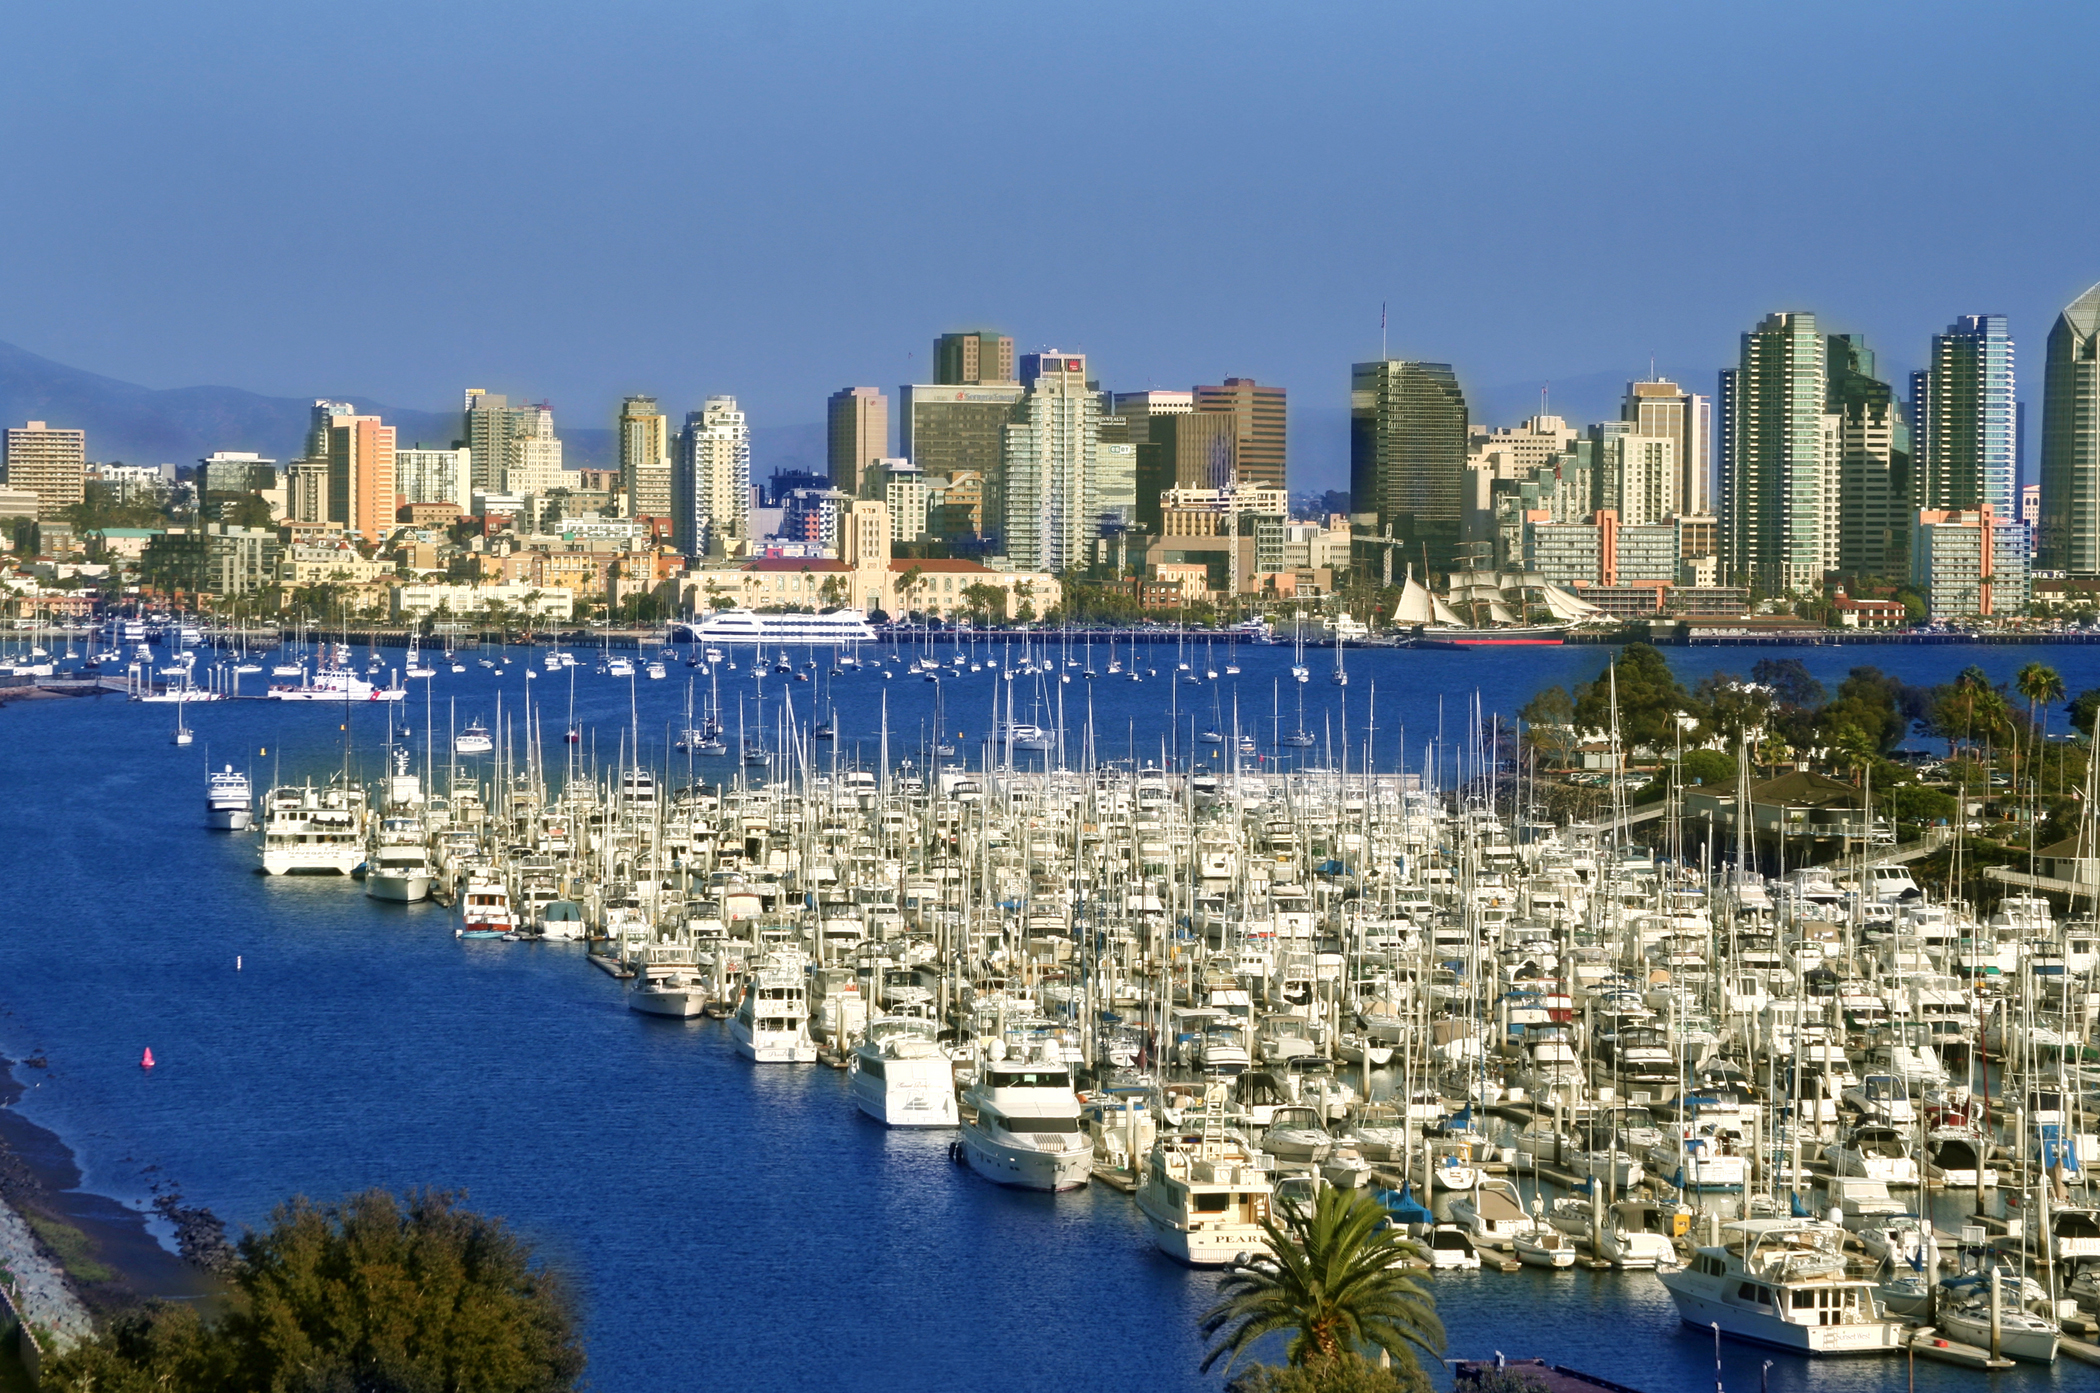 a personal recount on a trip to san diego